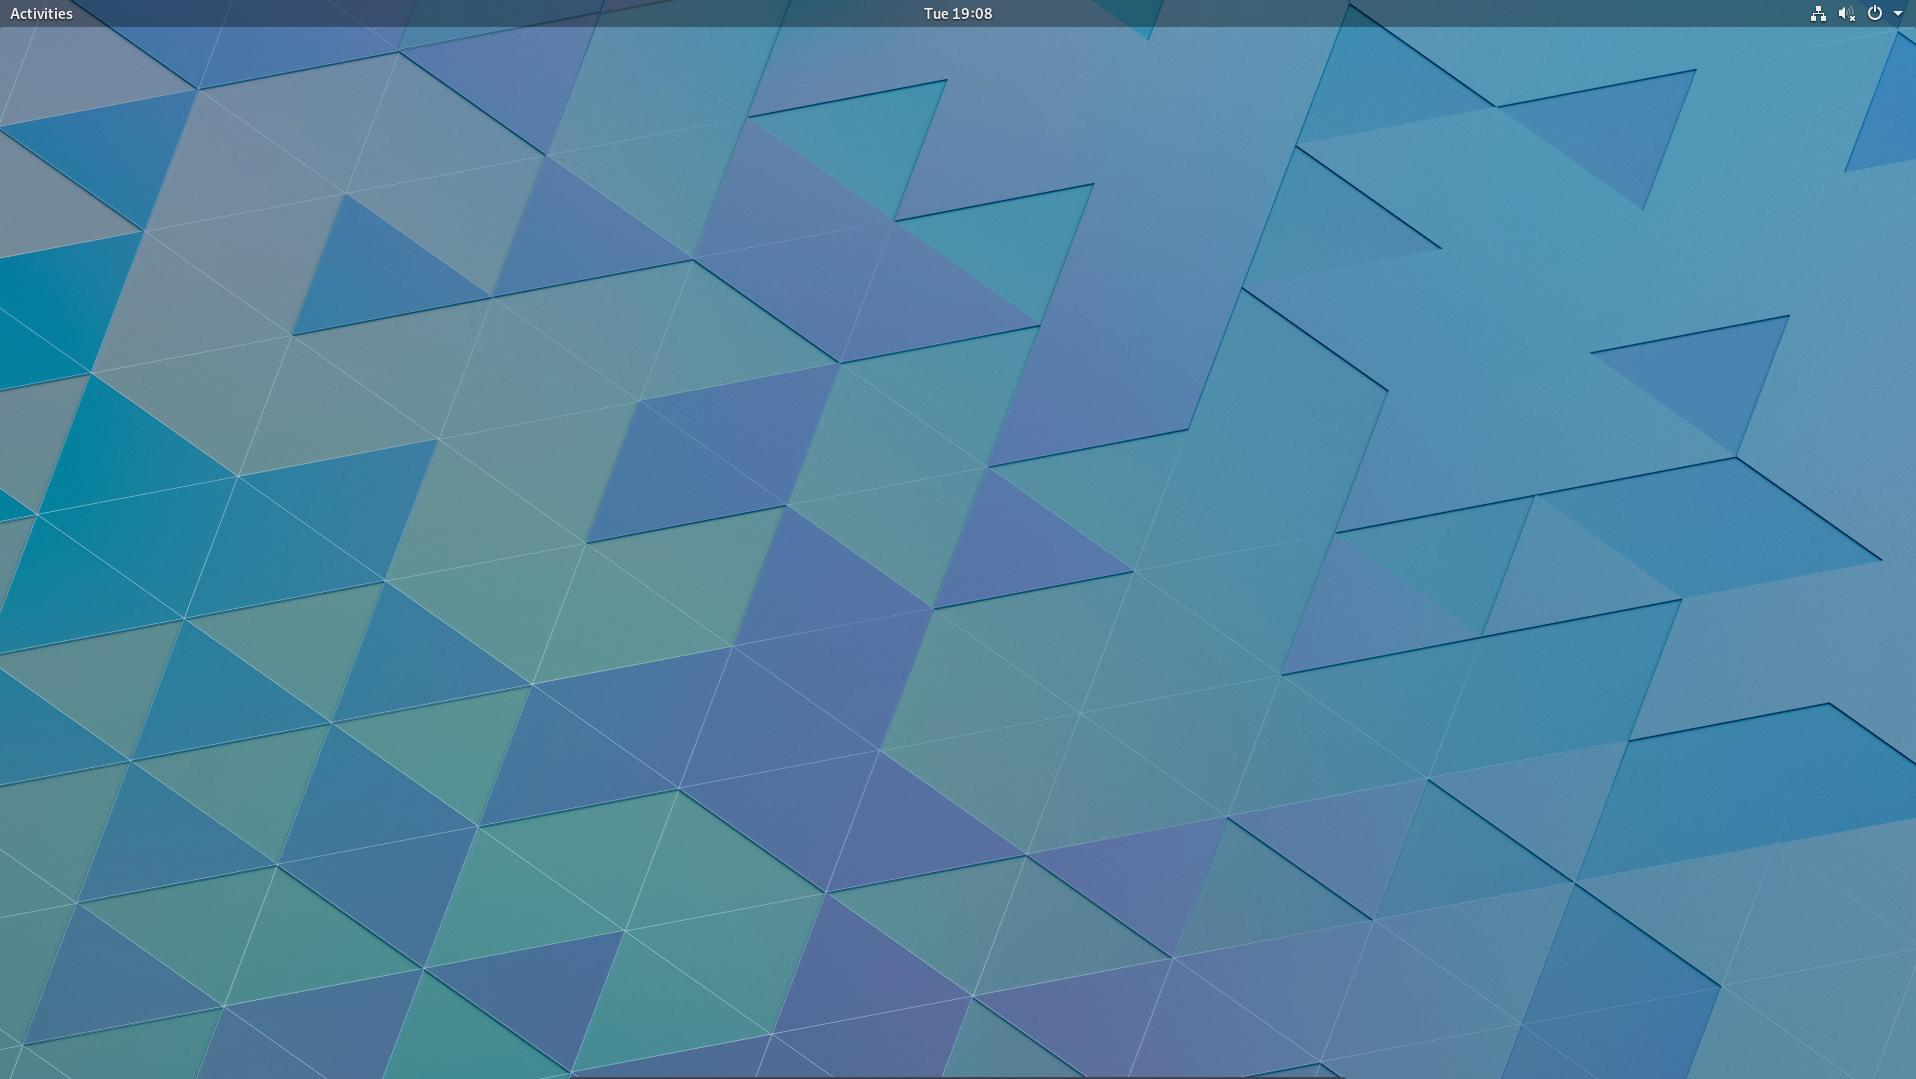 Installation of Gnome on Arch Linux Phase 4